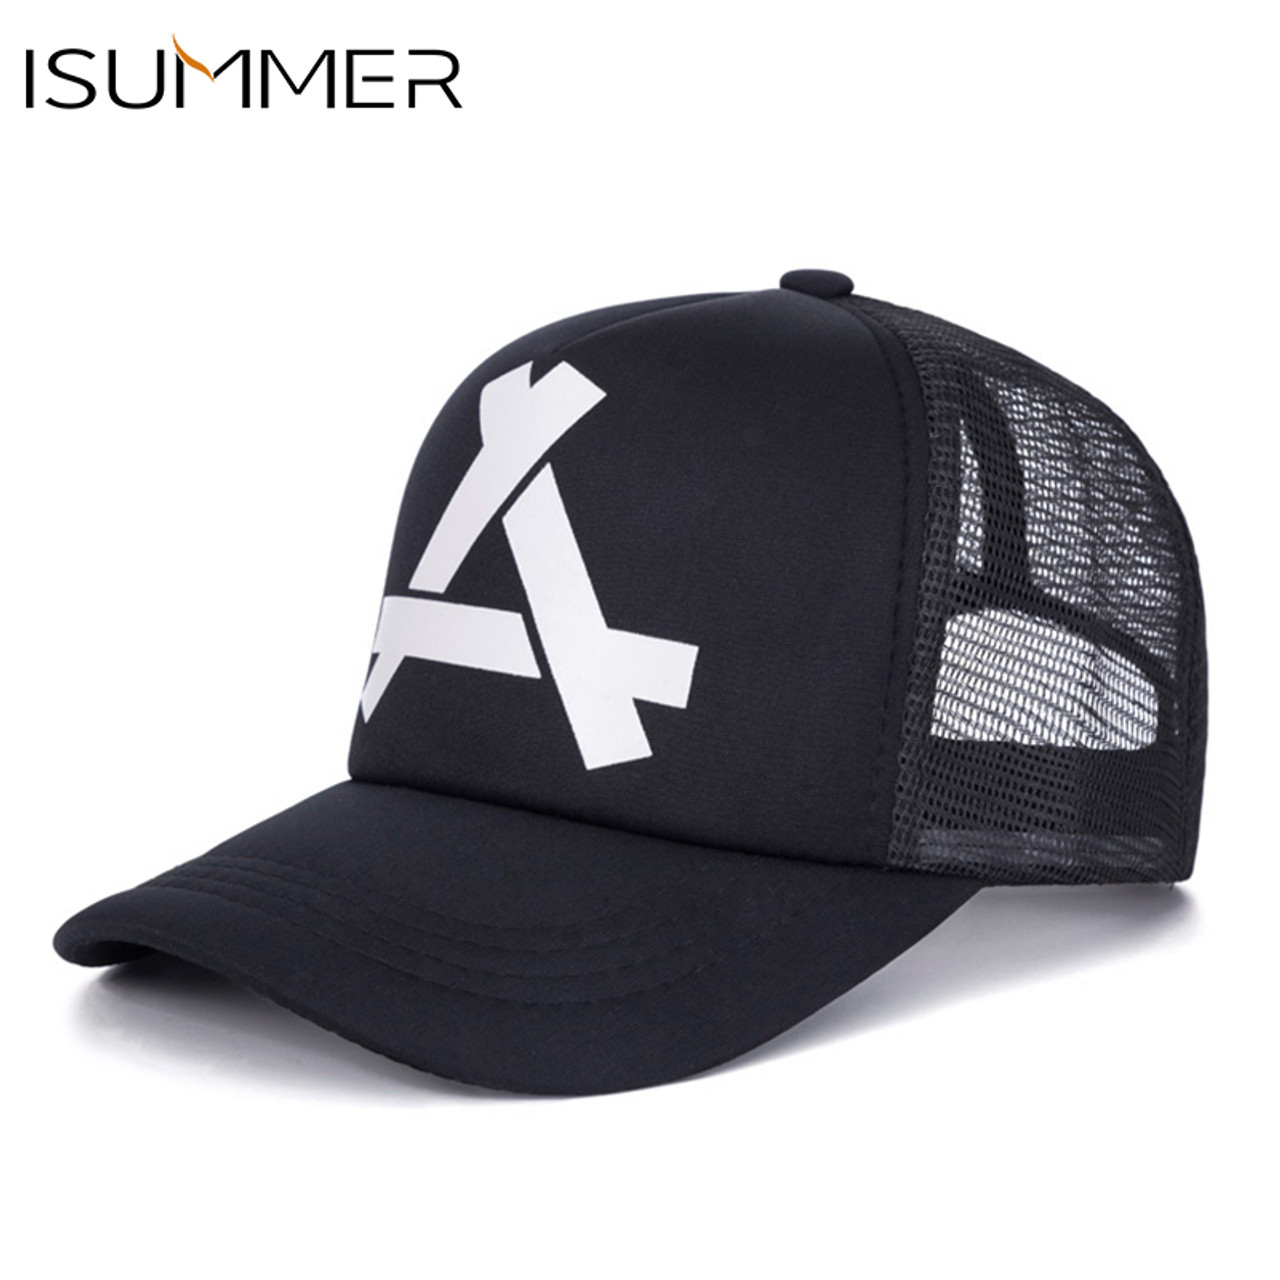 f0a7ca6f3fb ISUMMER 2018 Summer Baseball Mesh Cap Men Hat Hip Hop Snapback Hat Dad Hat  Adjustable Leisure ...